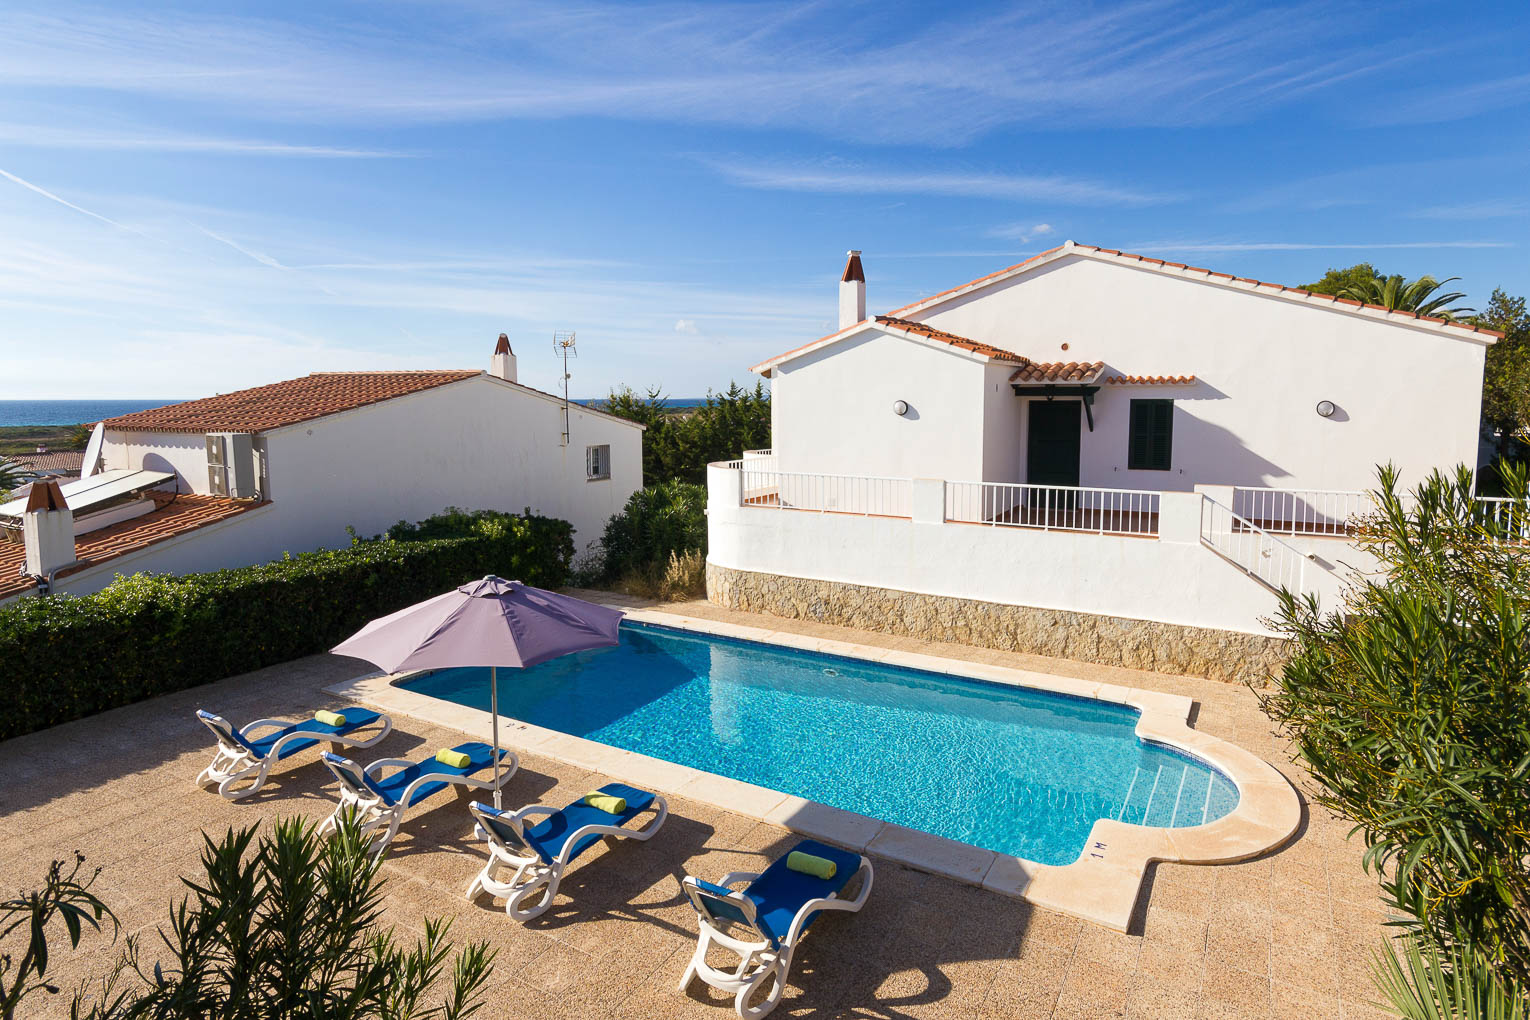 Apartments Maritim Son Bou in Son Bou, Menorca